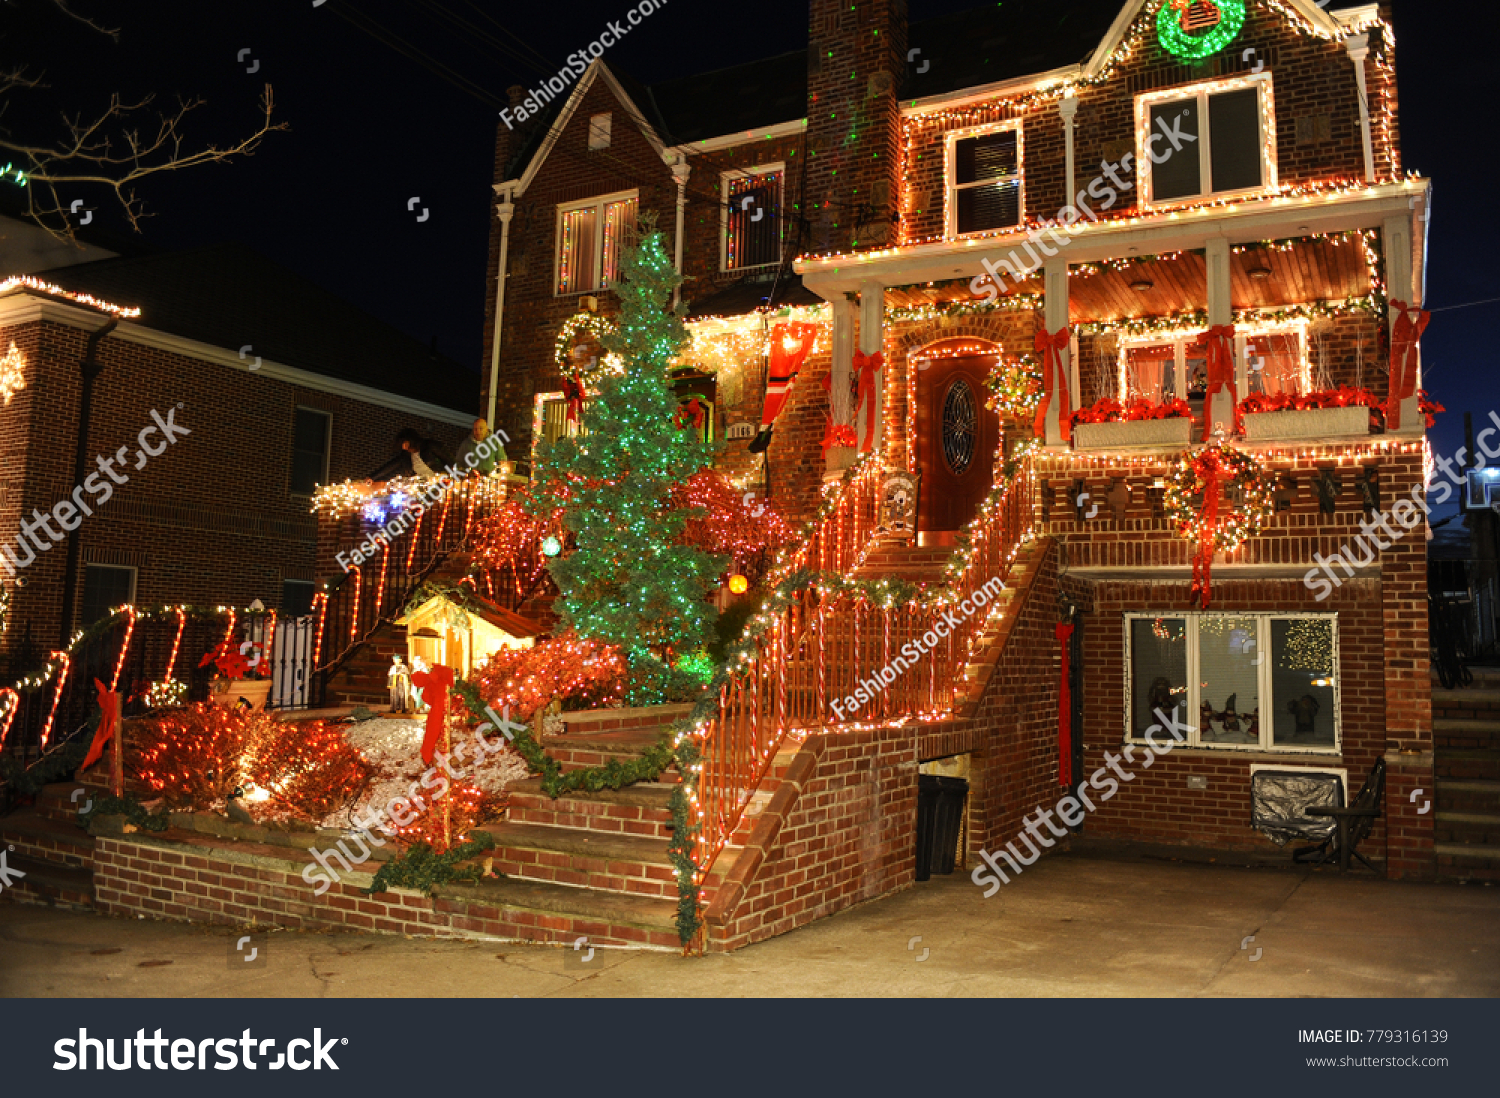 brooklyn new york december 20 2017 dyker heights christmas lights is the cutest small area of houses that are decorated for the holiday season in the